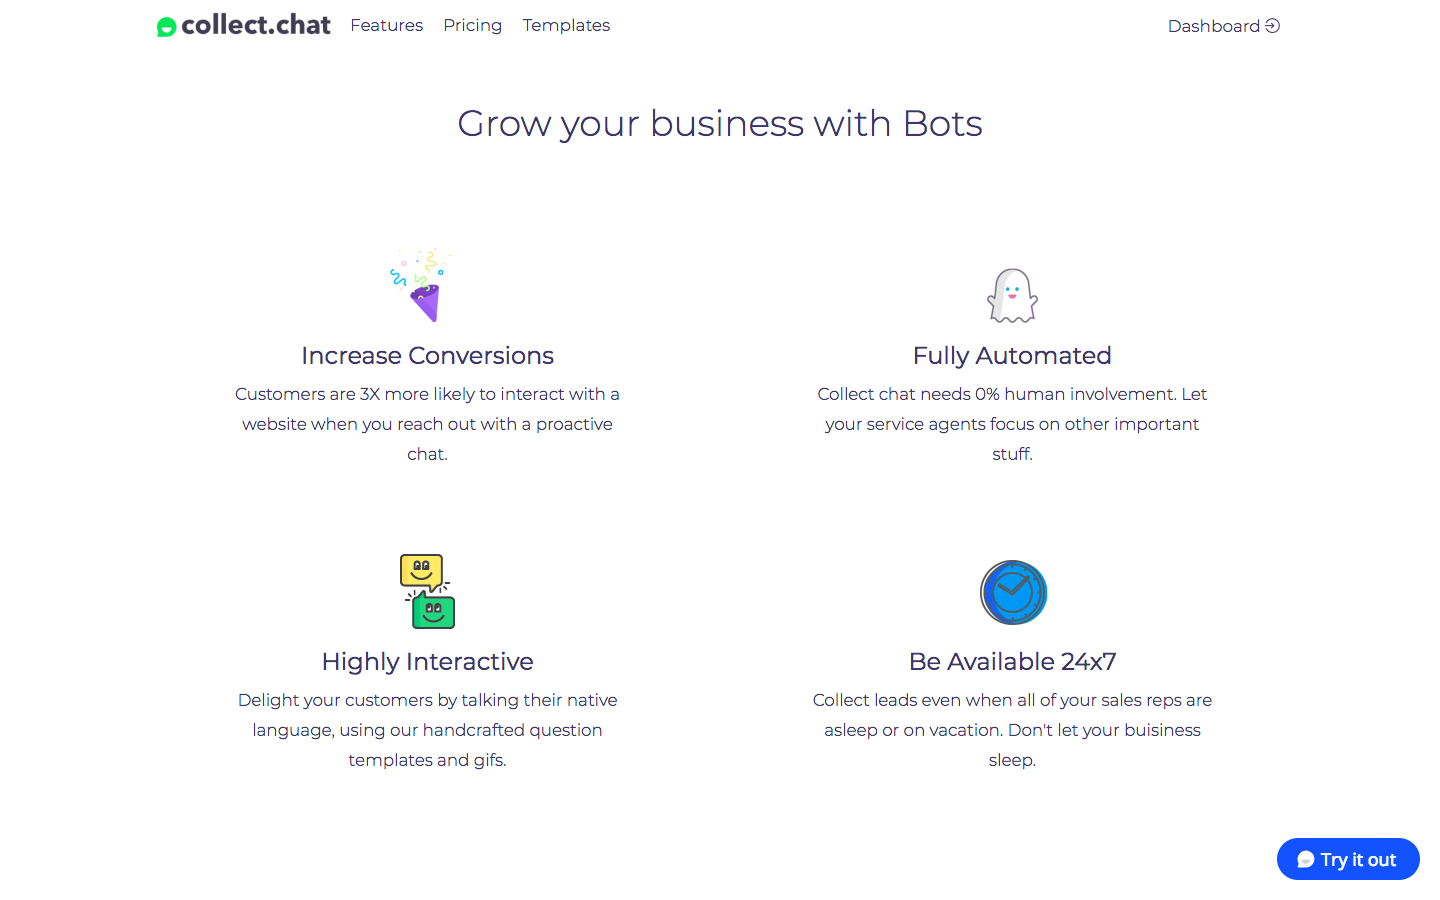 Collect.chat Demo - Grow your business with Bots